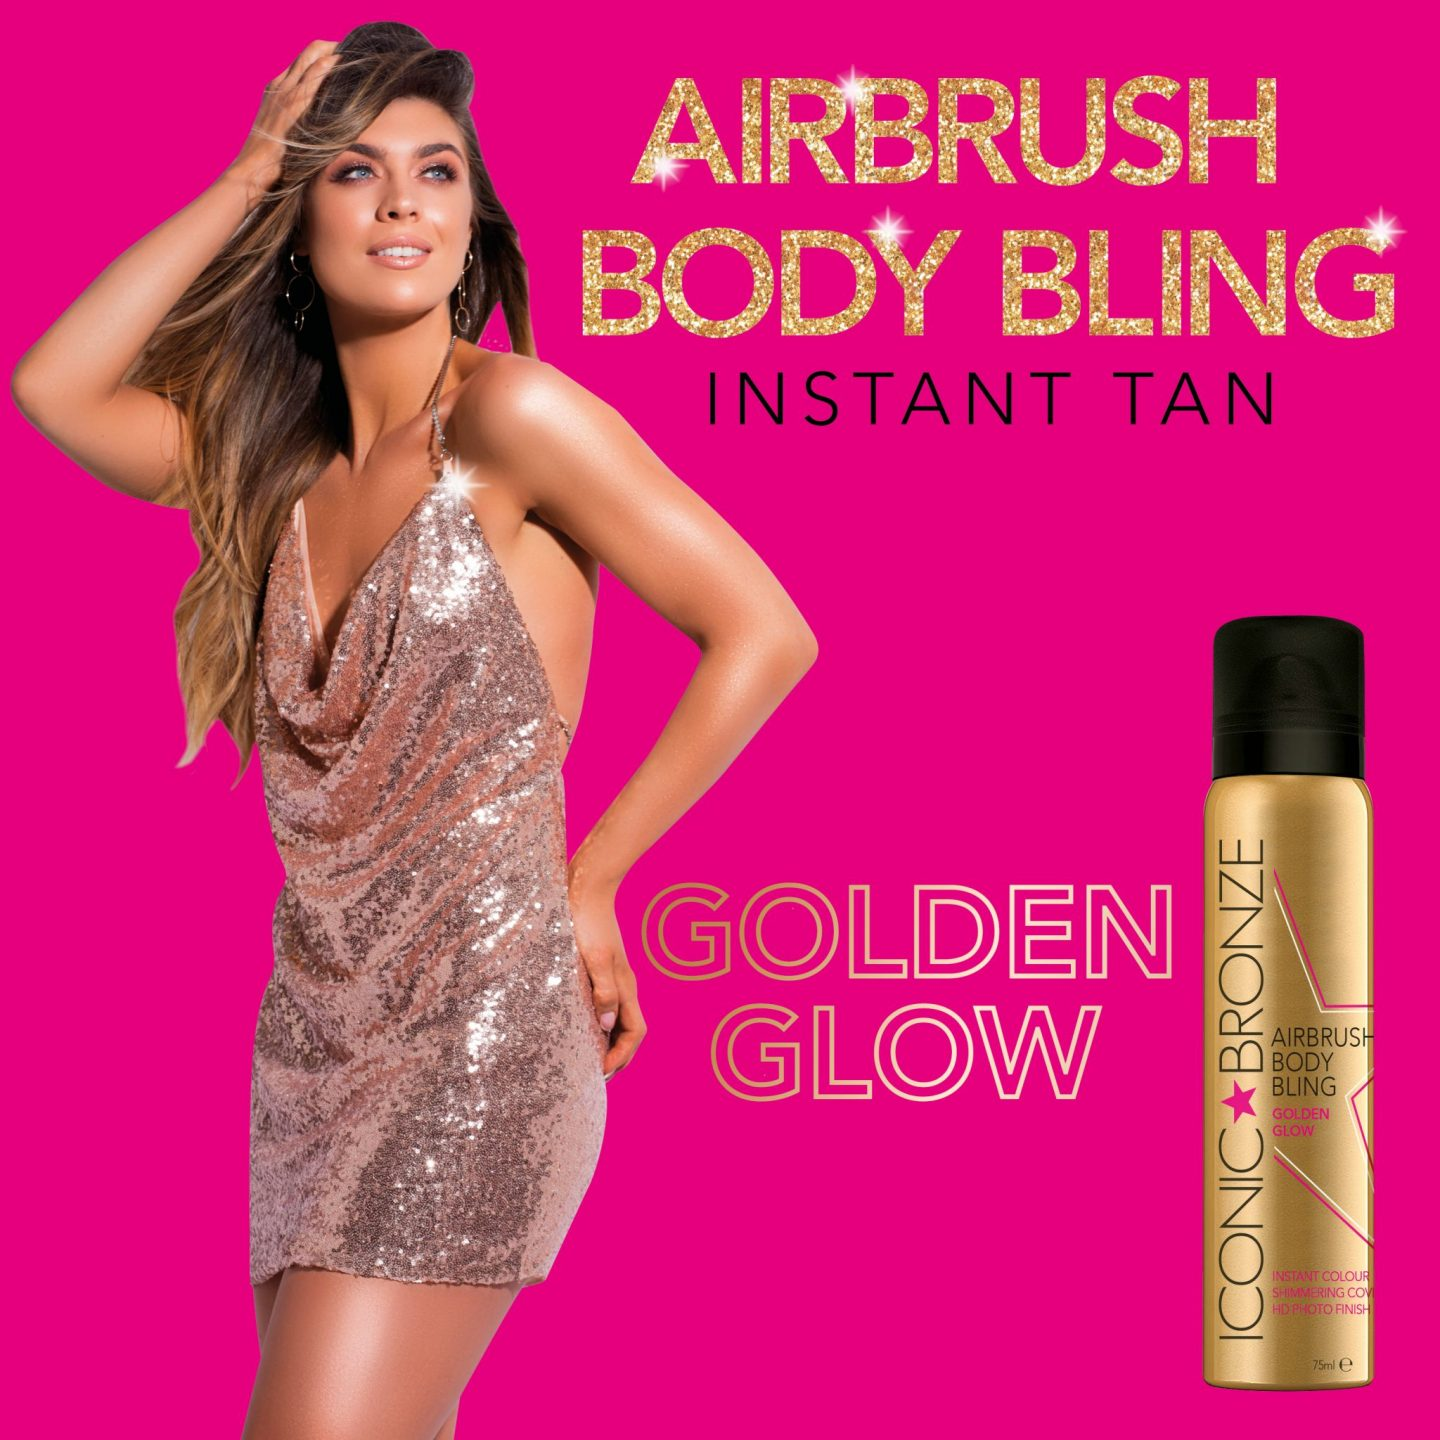 The Only Tan Accessory You Need This Christmas – Iconic Bronze Airbrush Body Bling